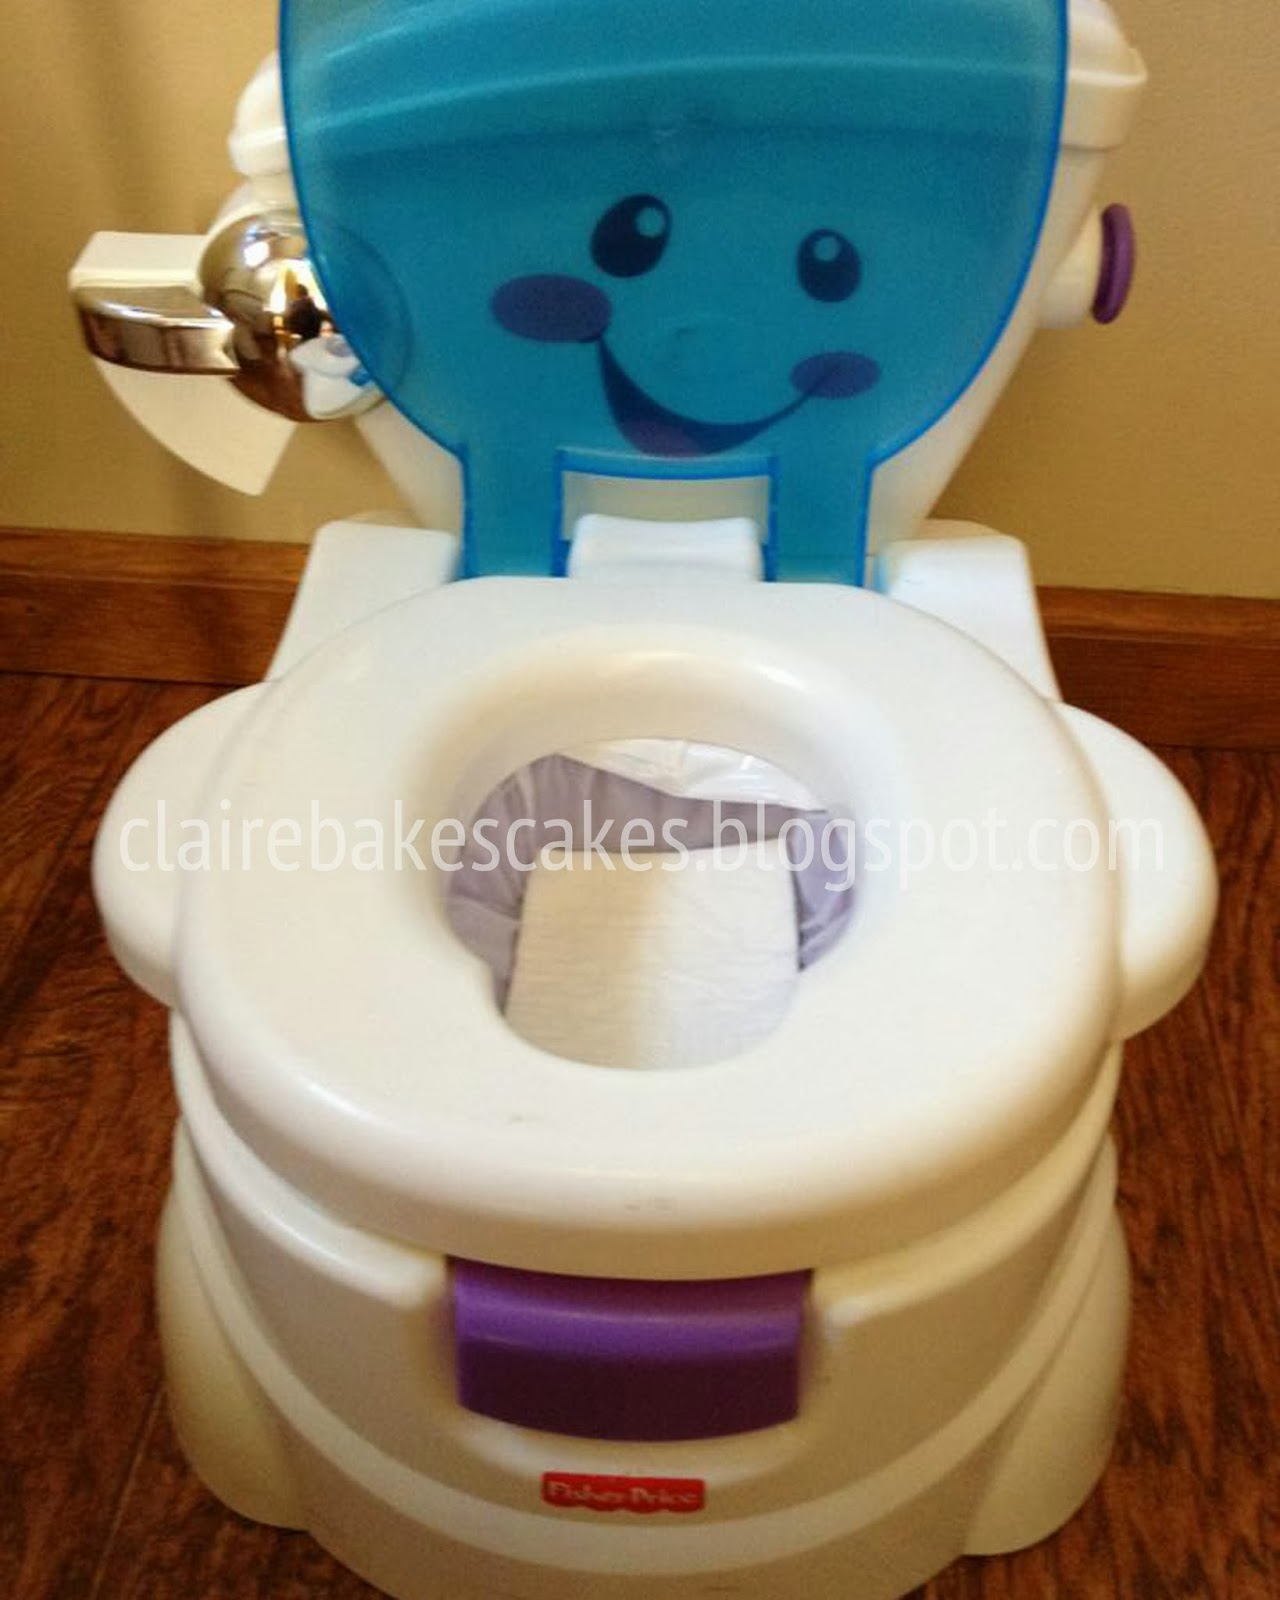 My Life as a MOM TidyTots Potty Chair Liners Review